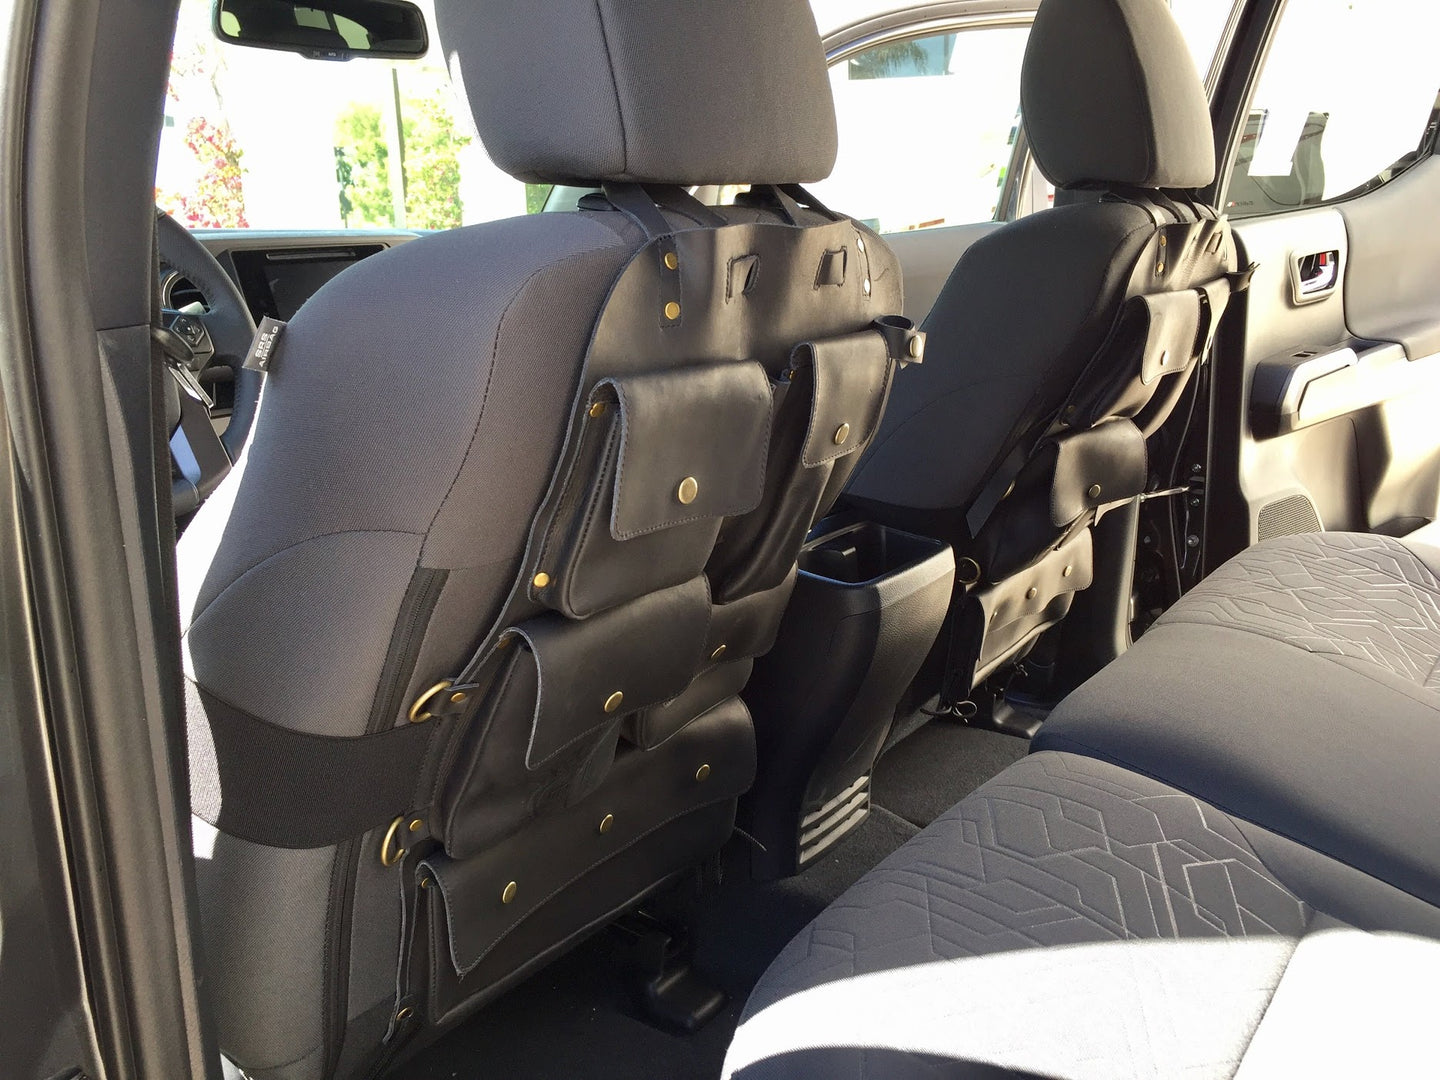 Pair of Universal Seat Back Organizers